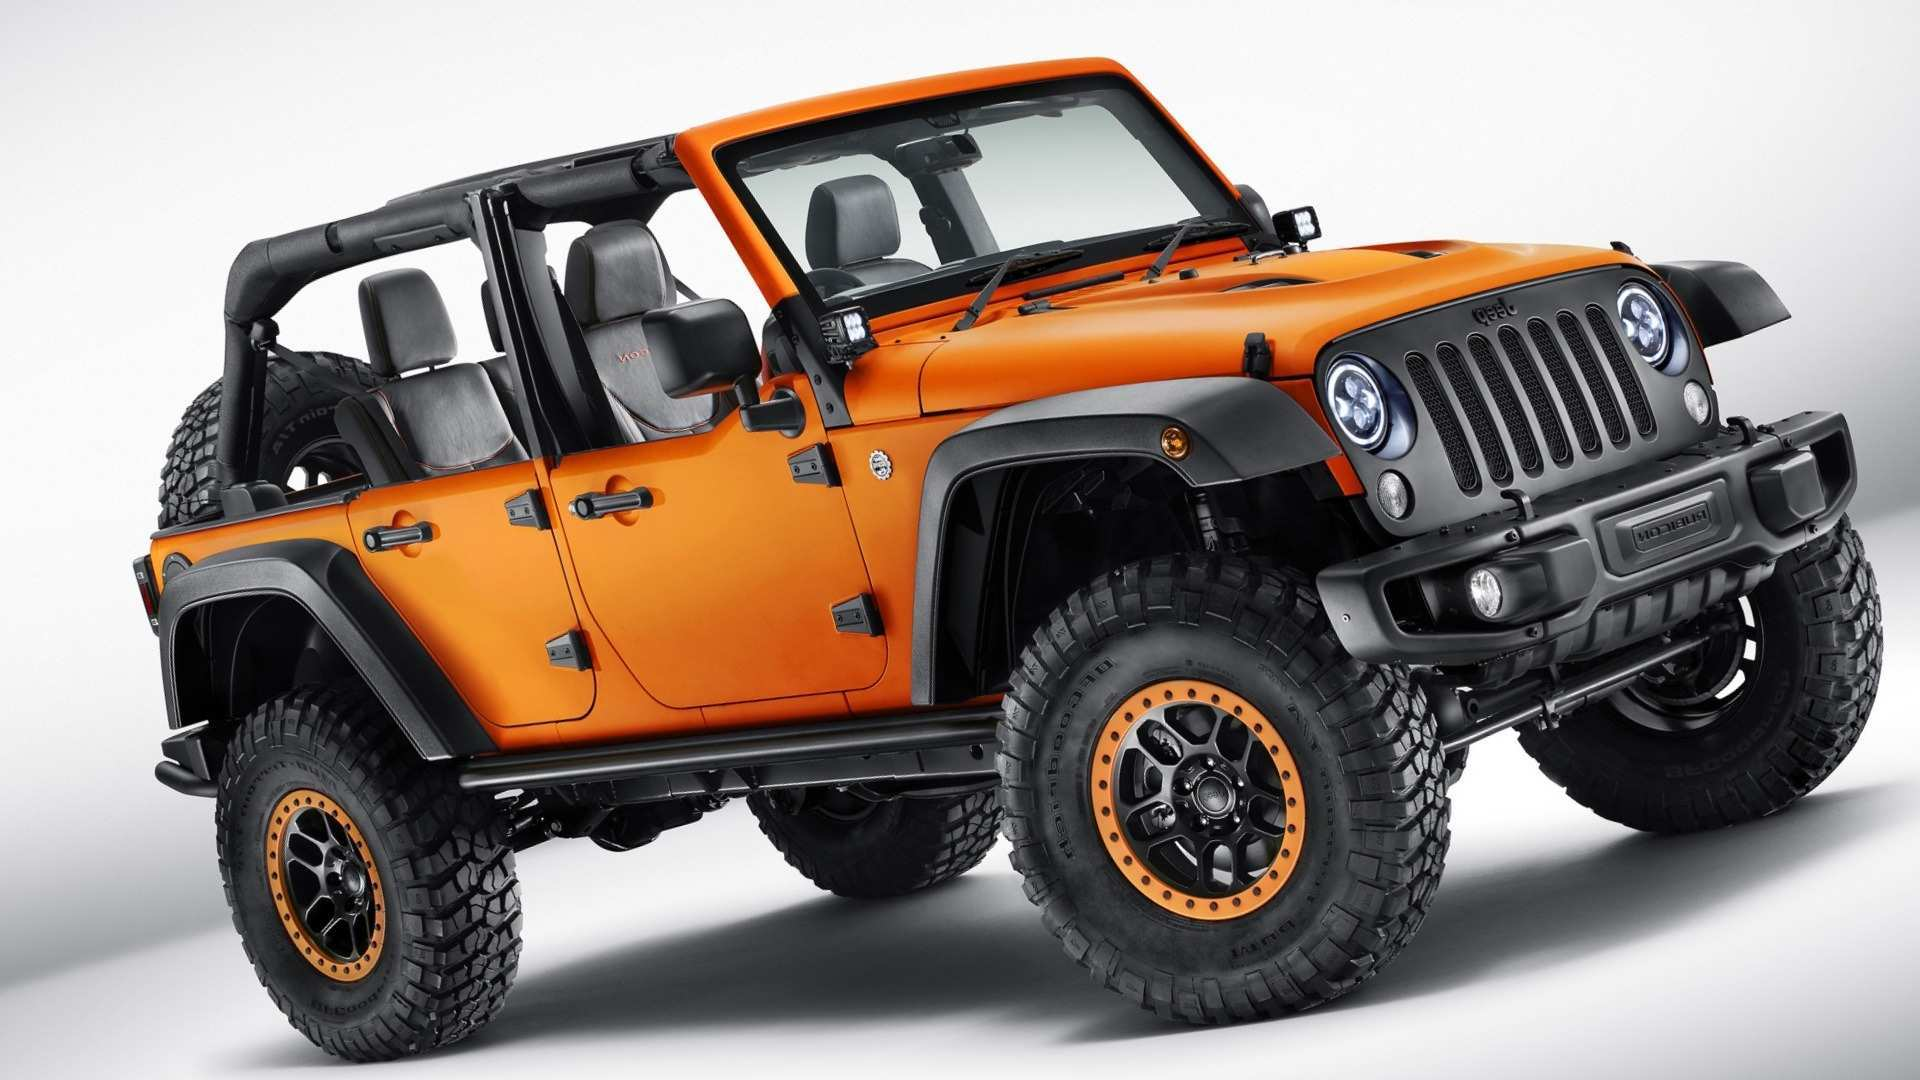 38 All New New Jeep 2019 Wrangler Colors Picture Release Date And Review Speed Test by New Jeep 2019 Wrangler Colors Picture Release Date And Review